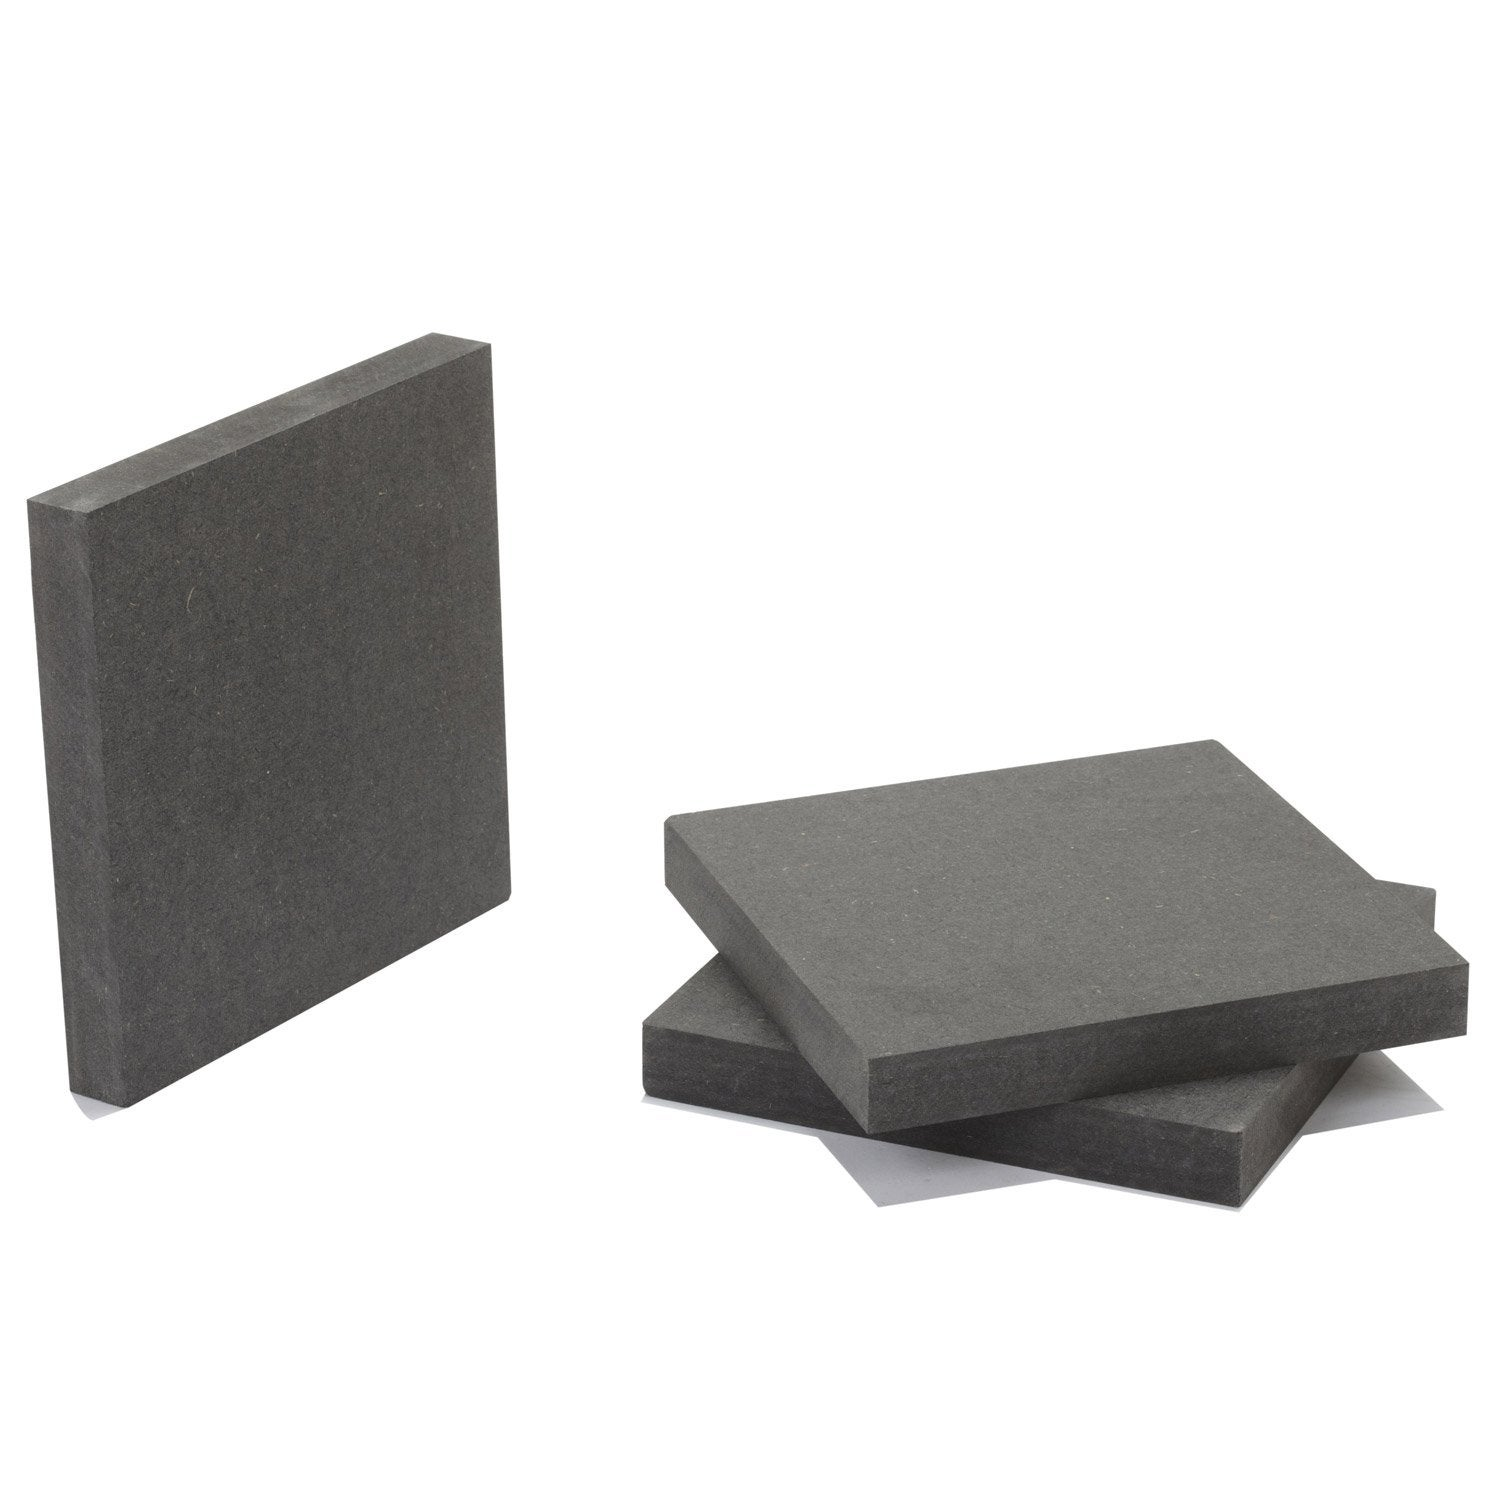 Pr d coup m dium mdf anthracite valchromat for Leroy merlin tableros mdf